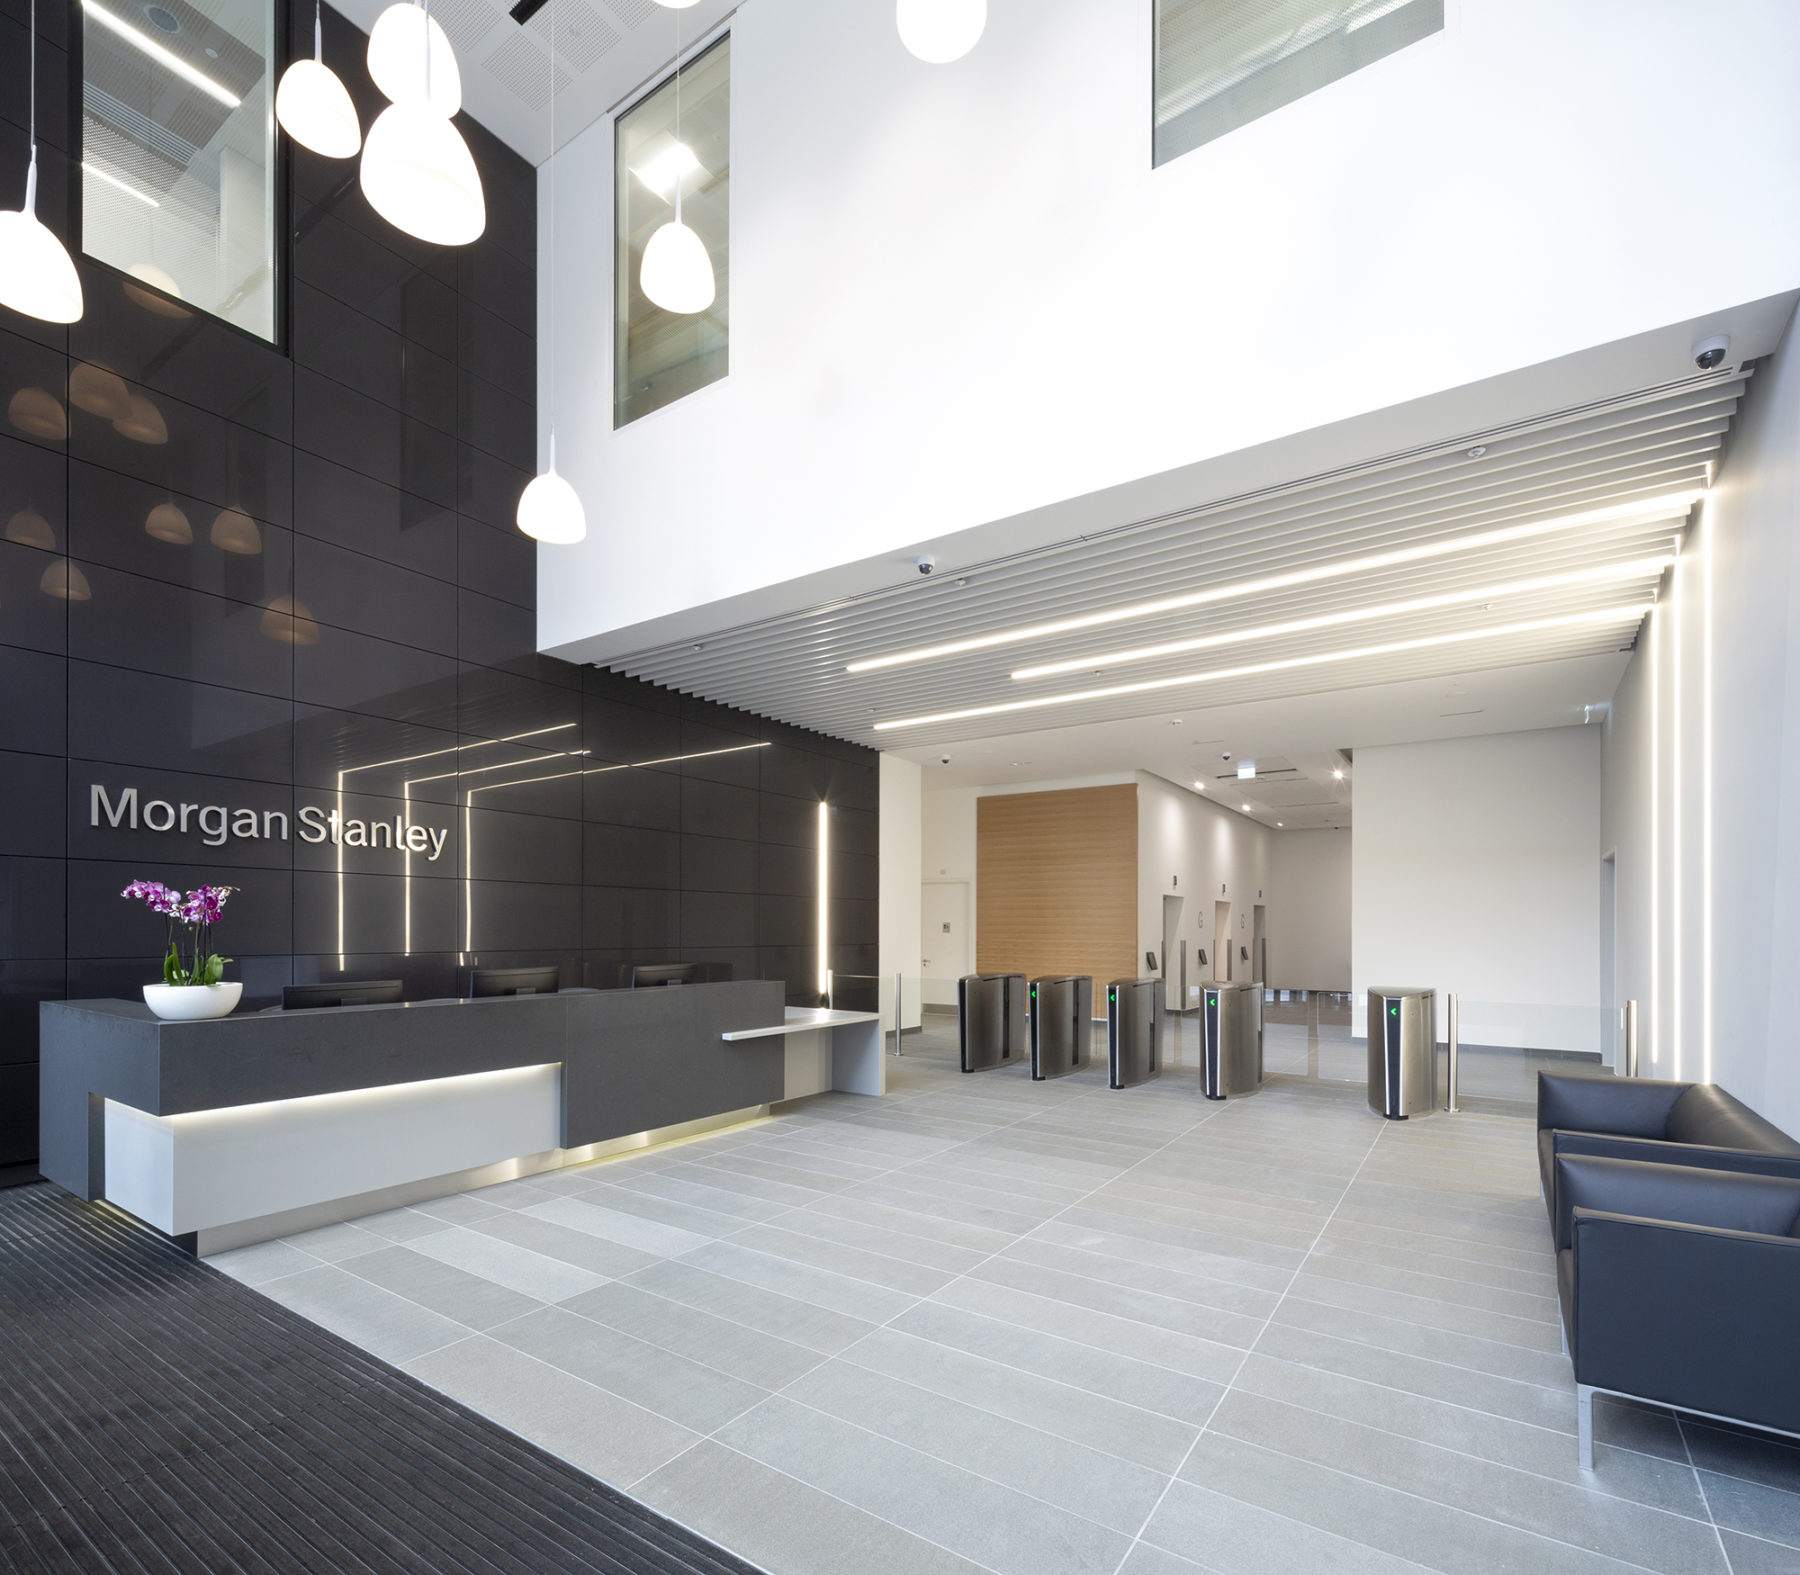 Building entrance and ground floor reception area| Morgan Stanley | by McAteer Photograph